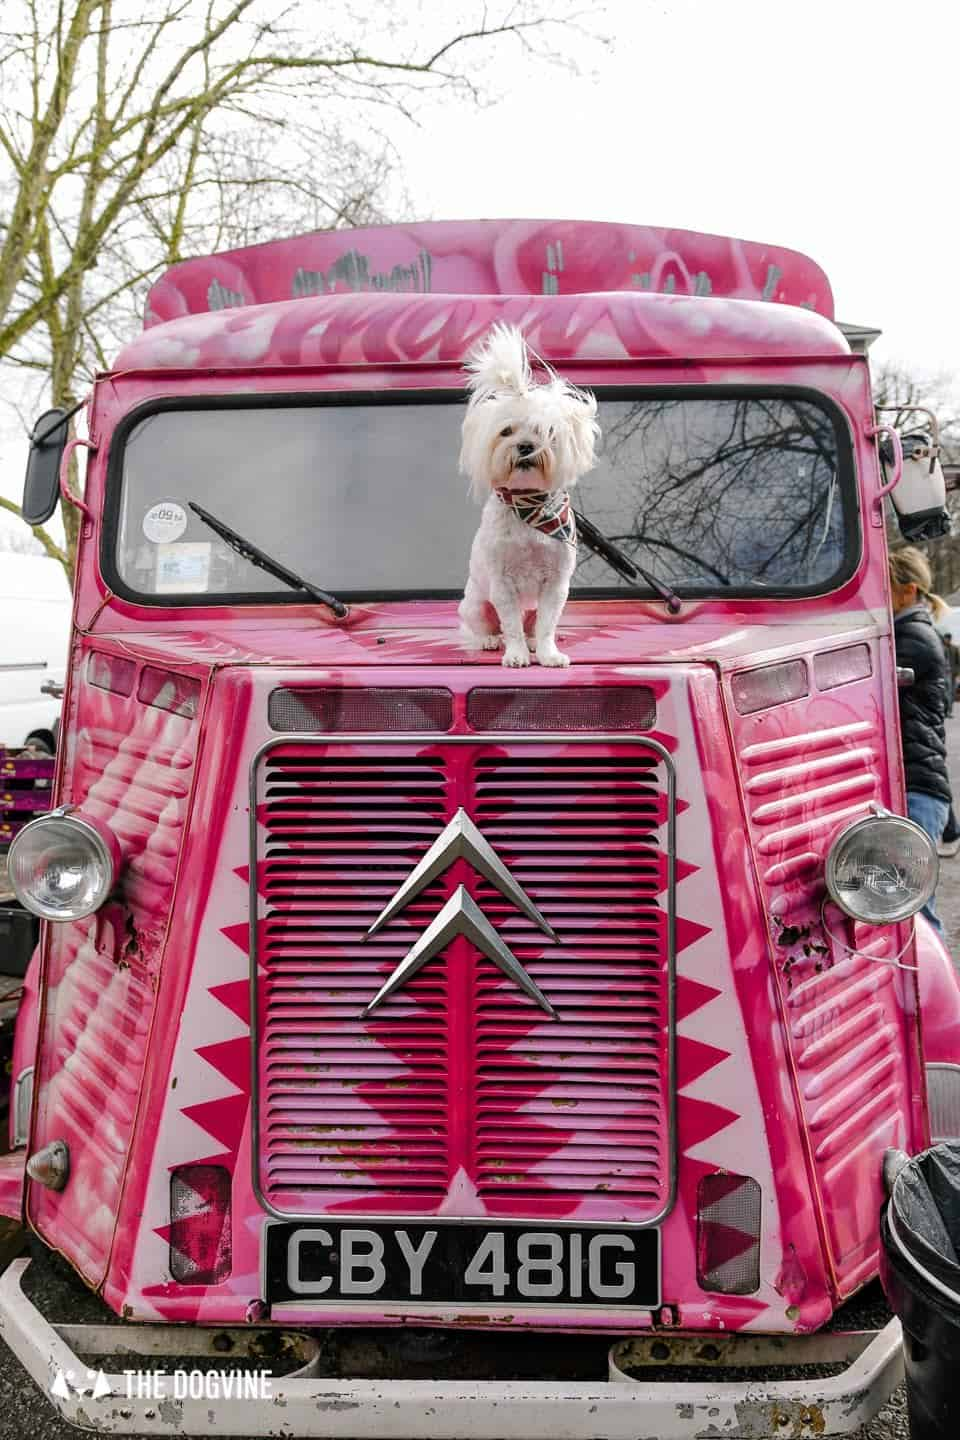 Guide To The Best Dog-friendly Street Food Markets and Halls in London - Brockley Market 1